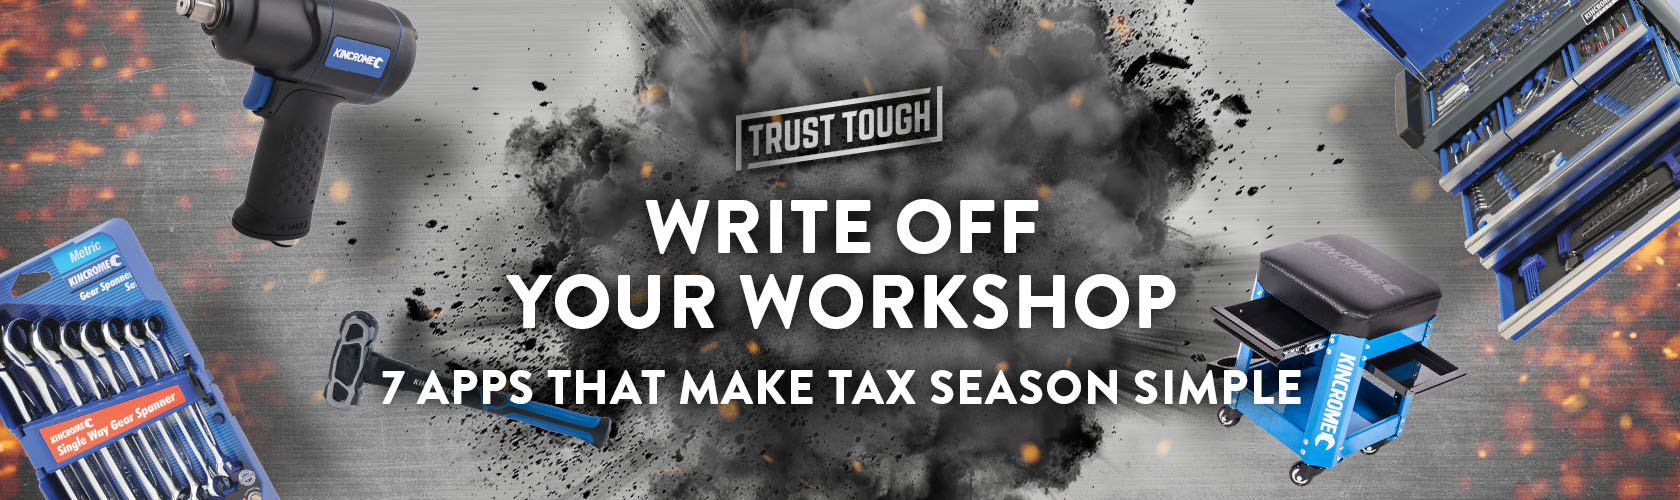 Write off your workshop